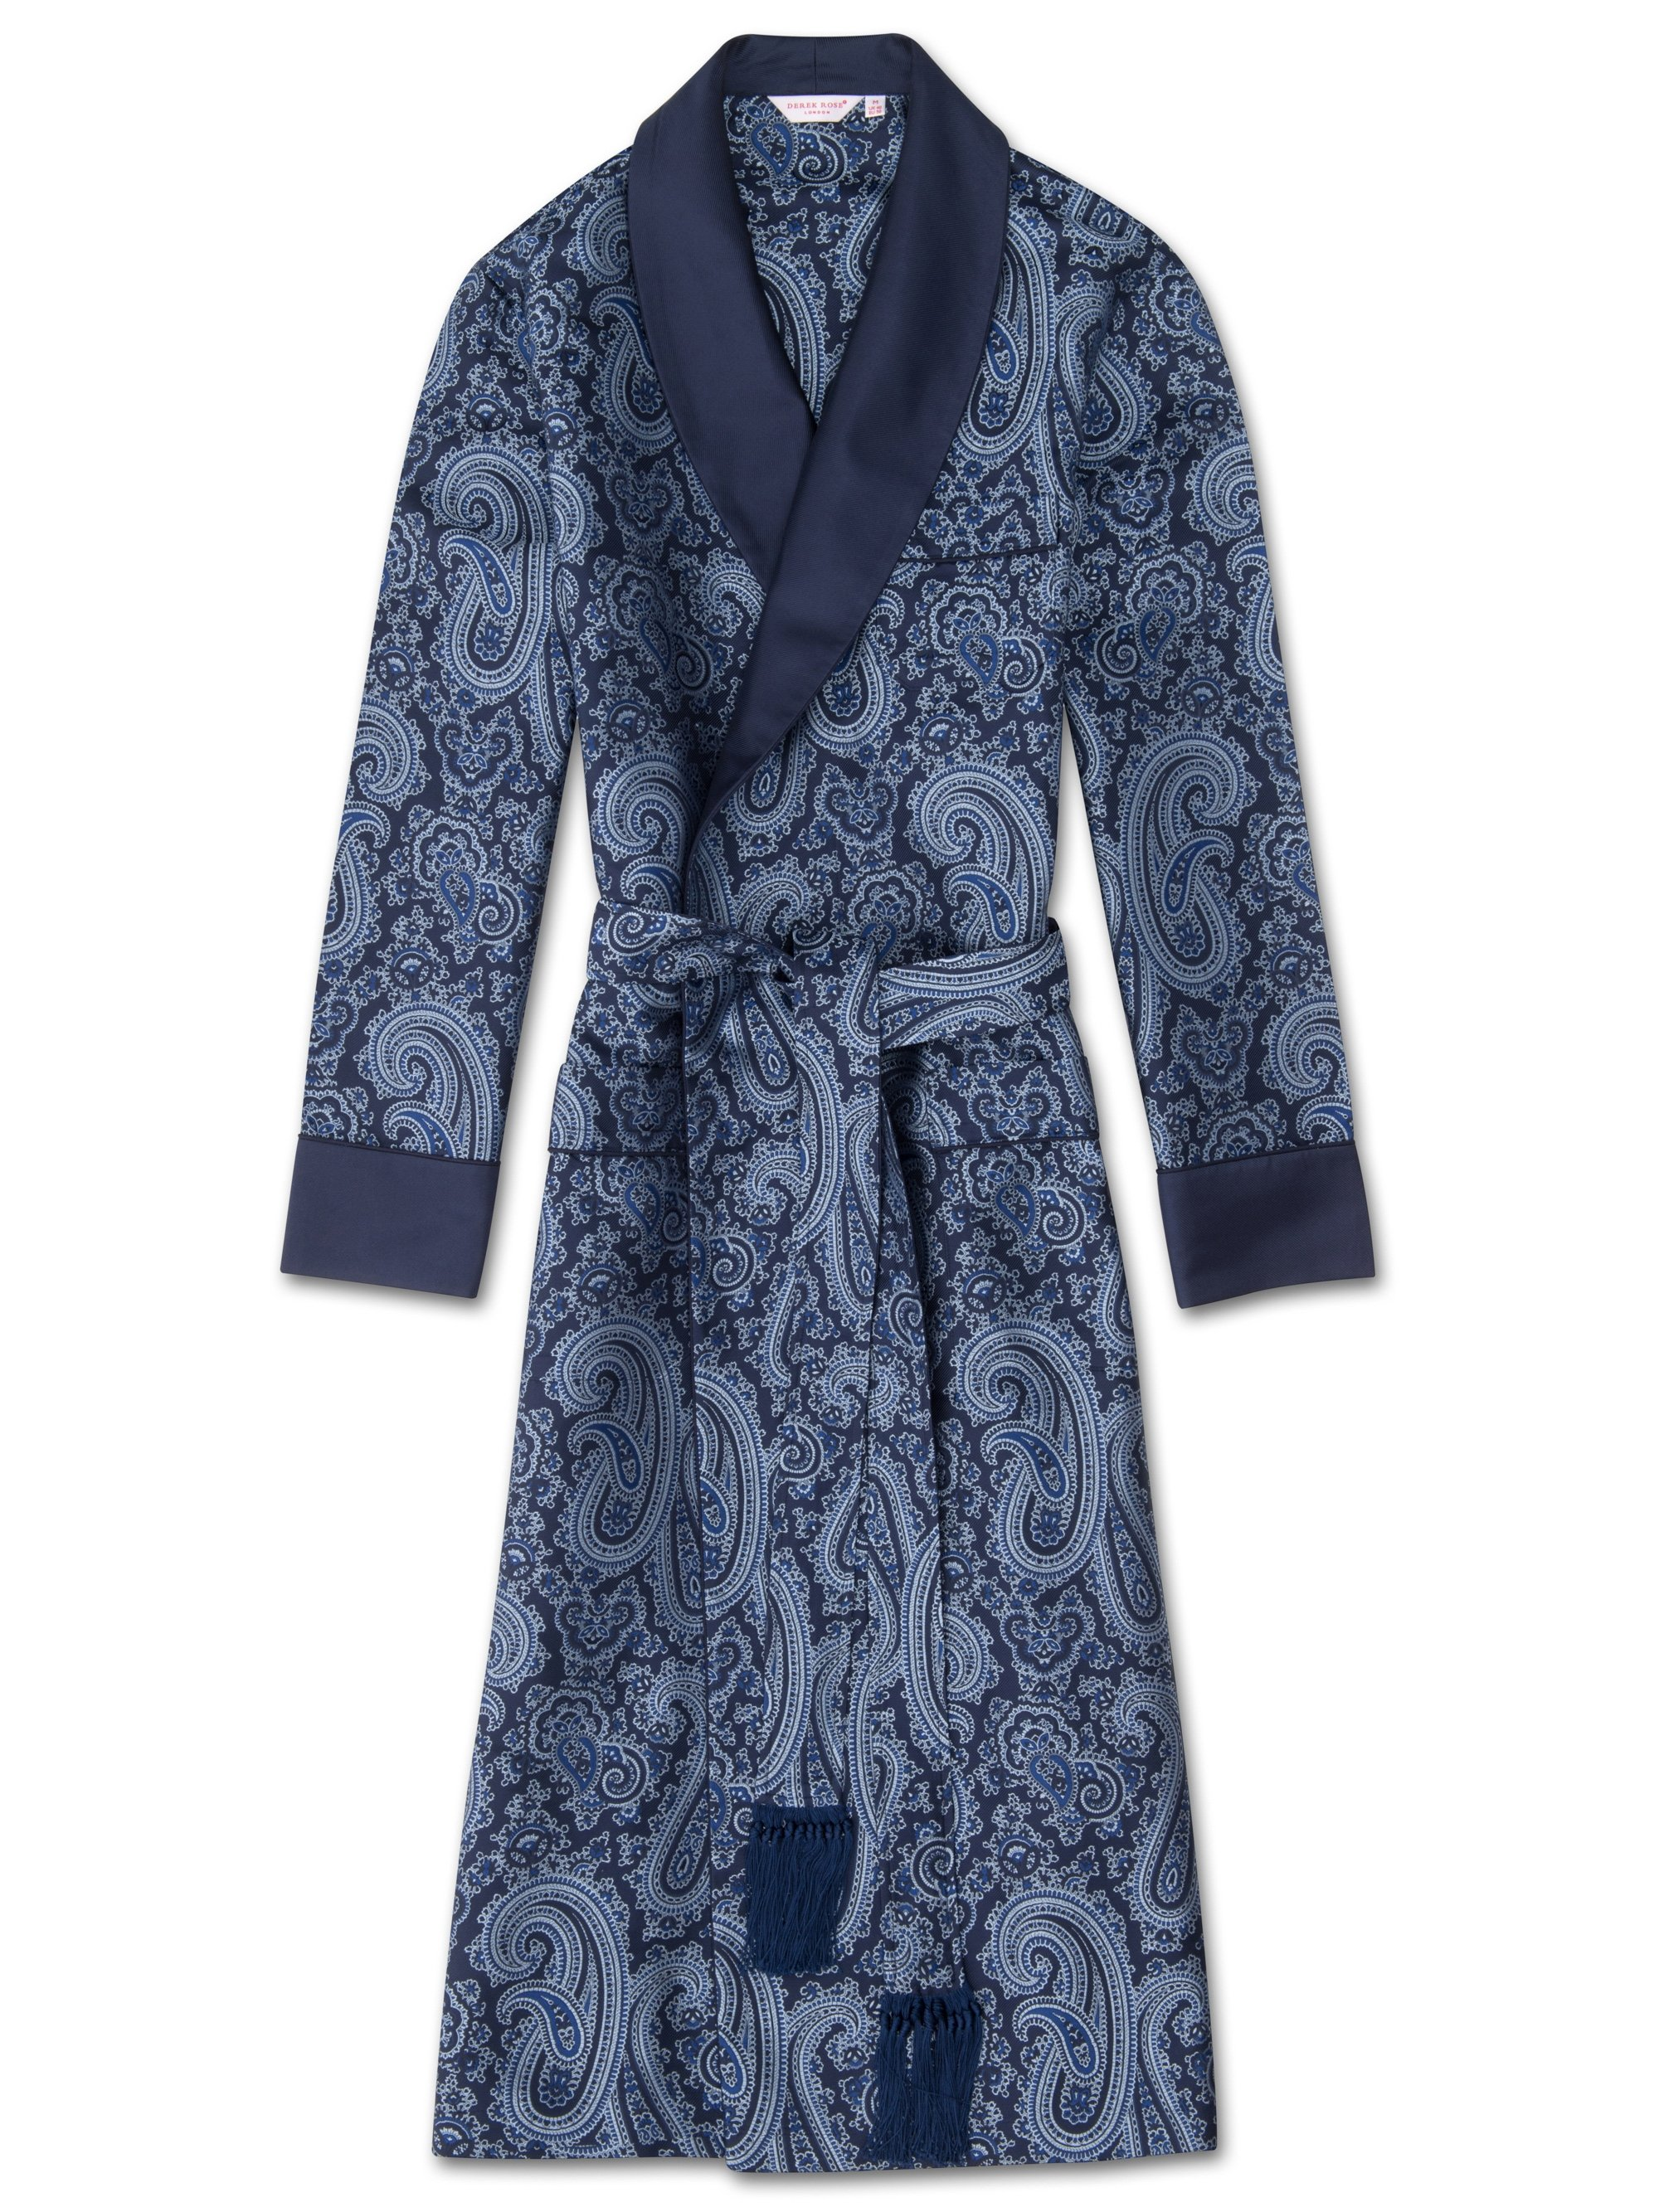 Men's Tasseled Belt Dressing Gown Verona 43 Pure Silk Jacquard Blue